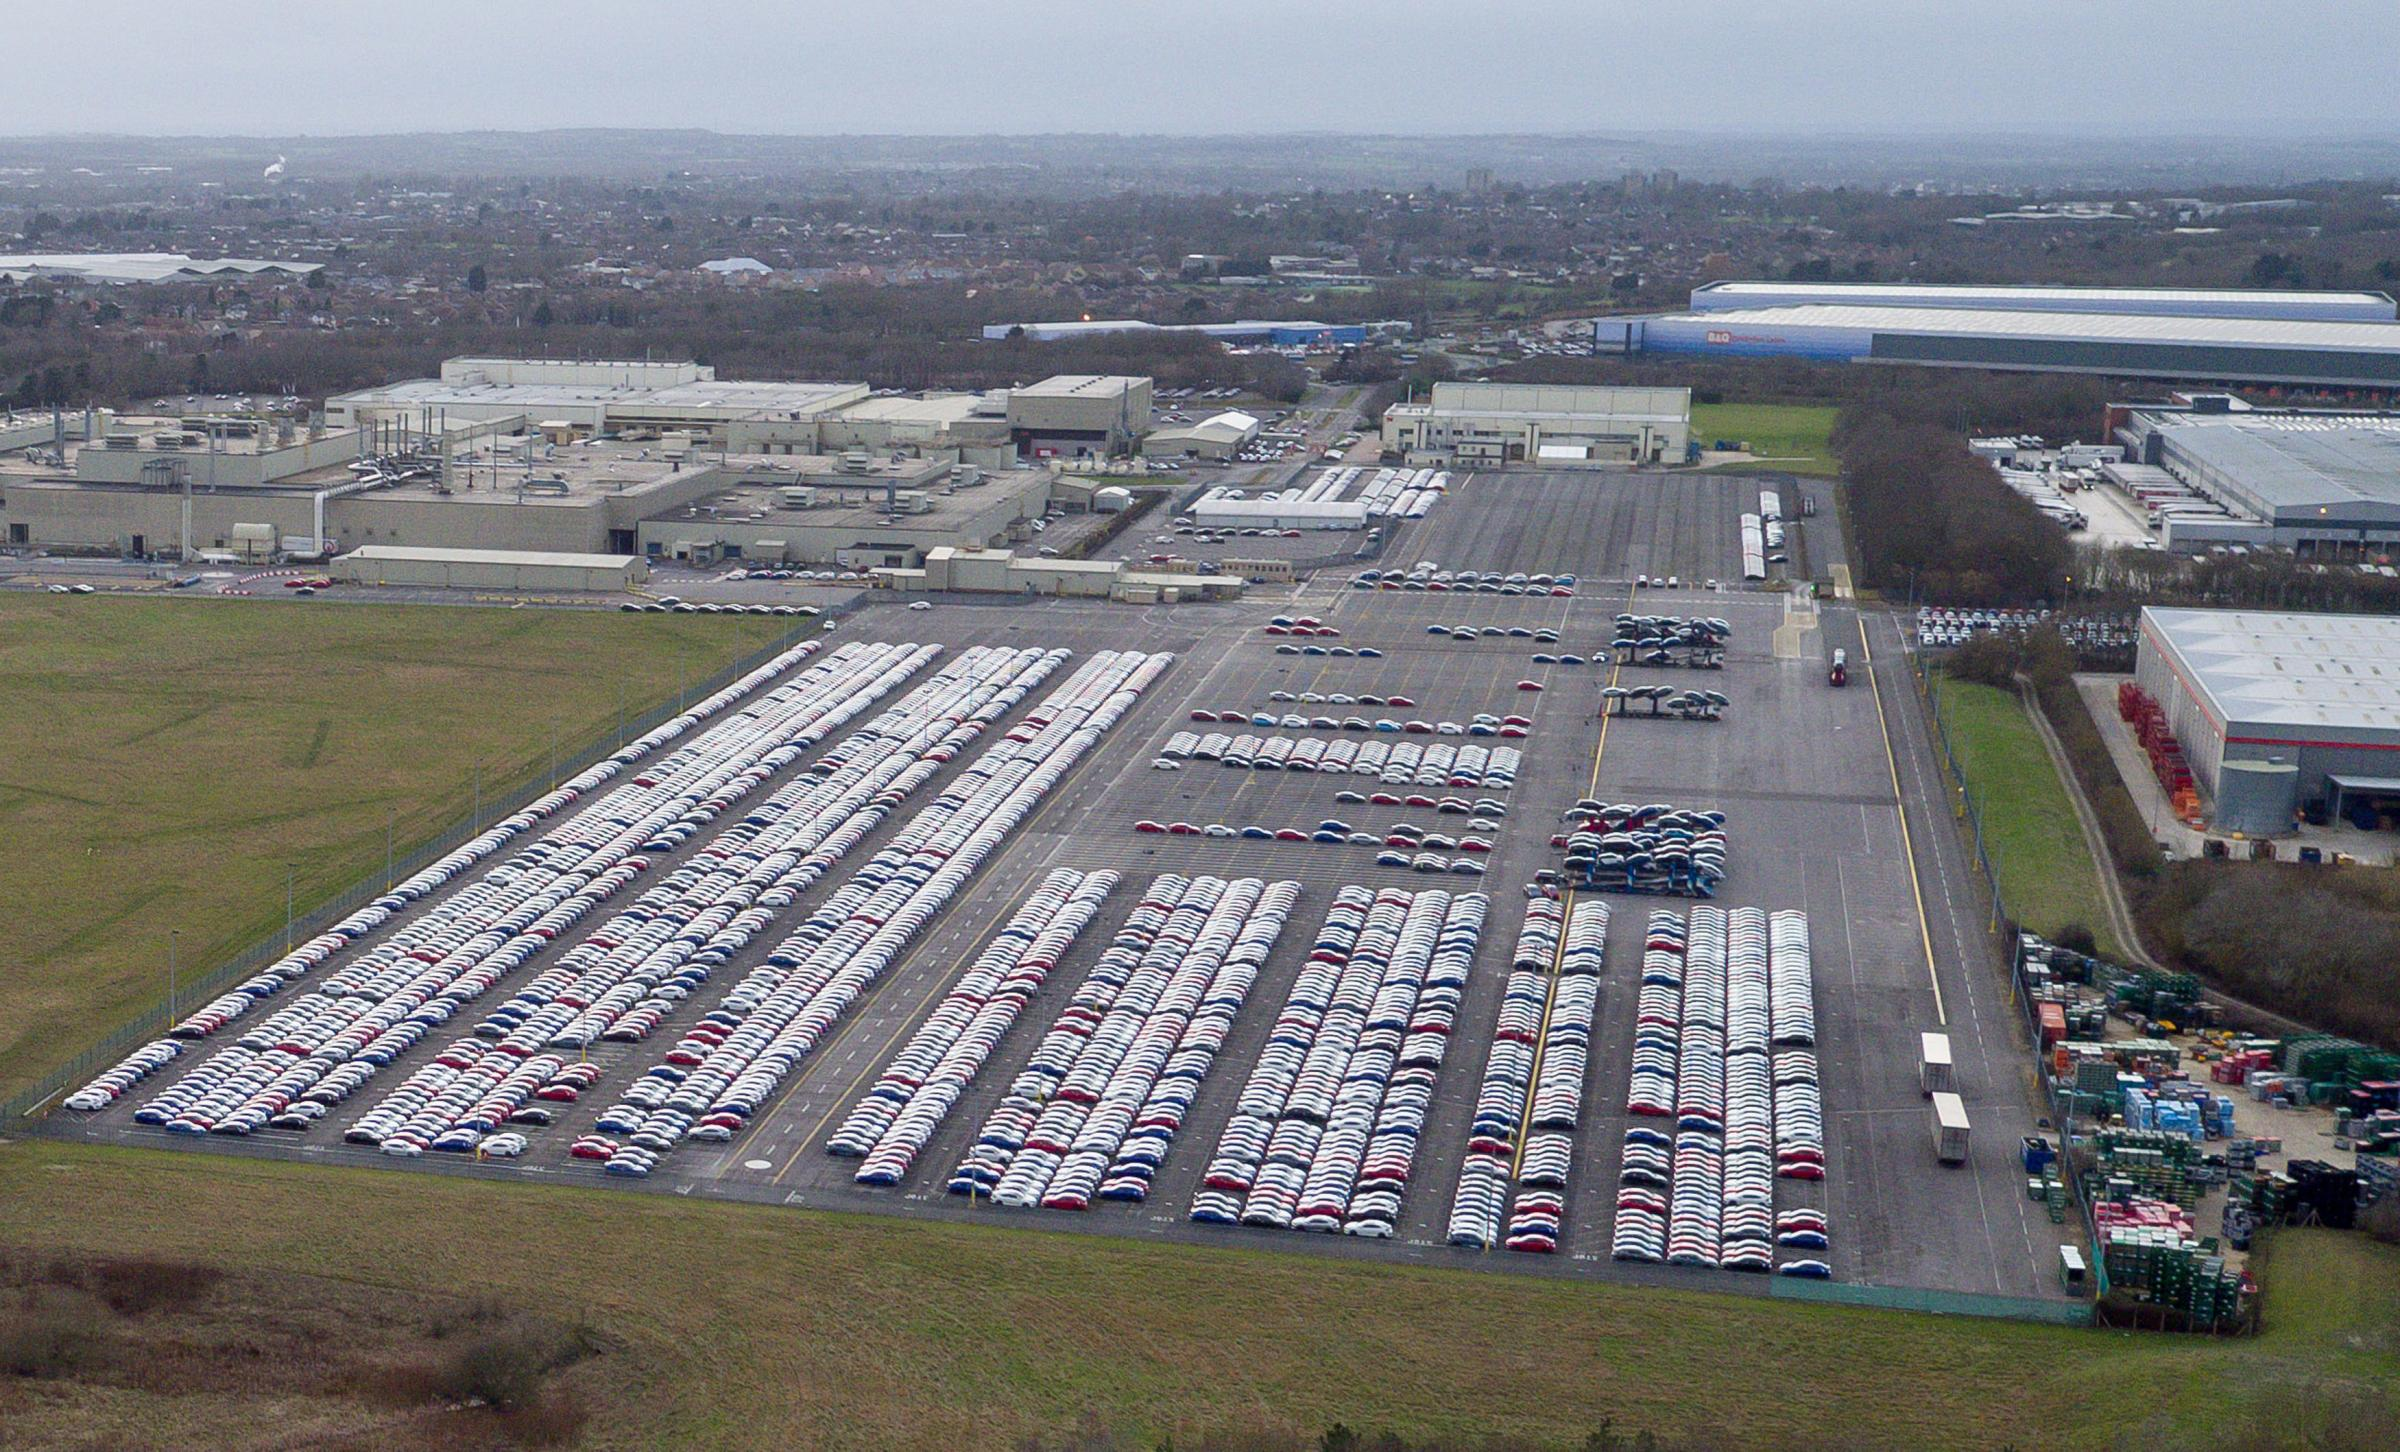 The Honda plant in Swindon, which the company has confirmed will close in 2021 with the loss of 3,500 jobs. PRESS ASSOCIATION Photo. Picture date: Tuesday February 19, 2019. See PA story INDUSTRY Honda. Photo credit should read: Ben Birchall/PA Wire.